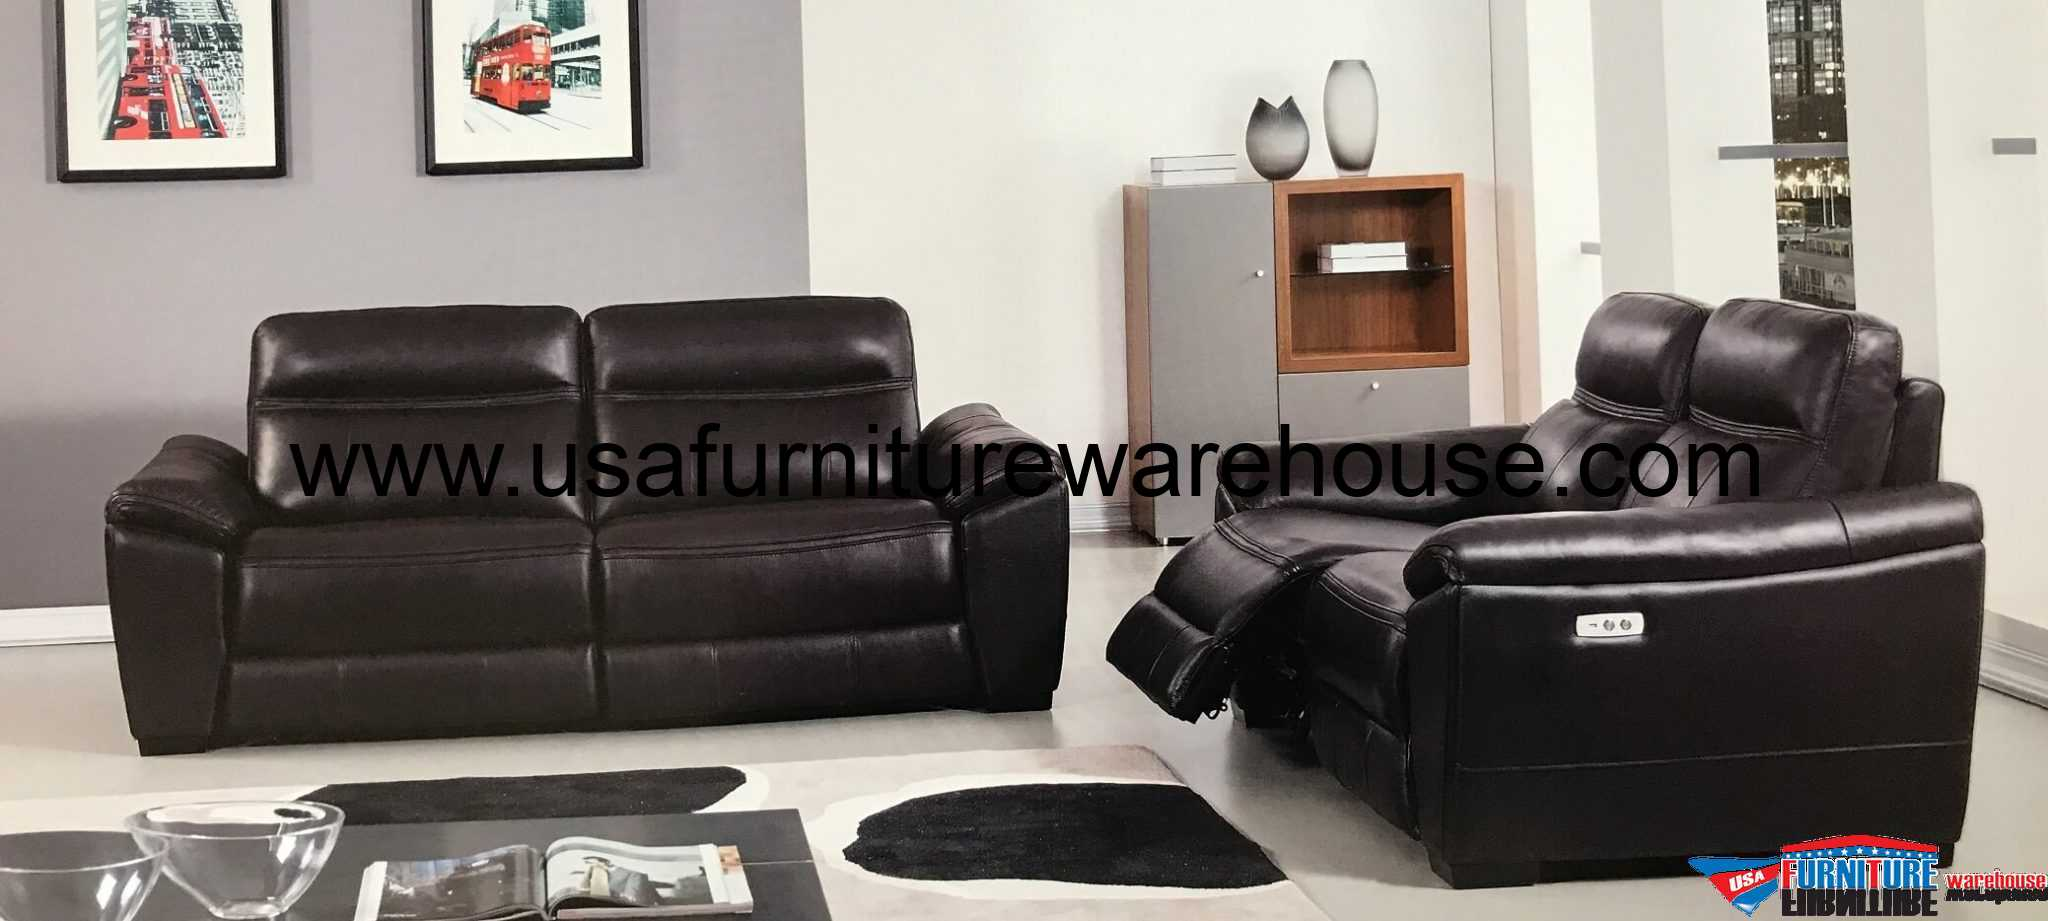 2 piece brown leather sofa throws for sofas argos forma full italian dark power